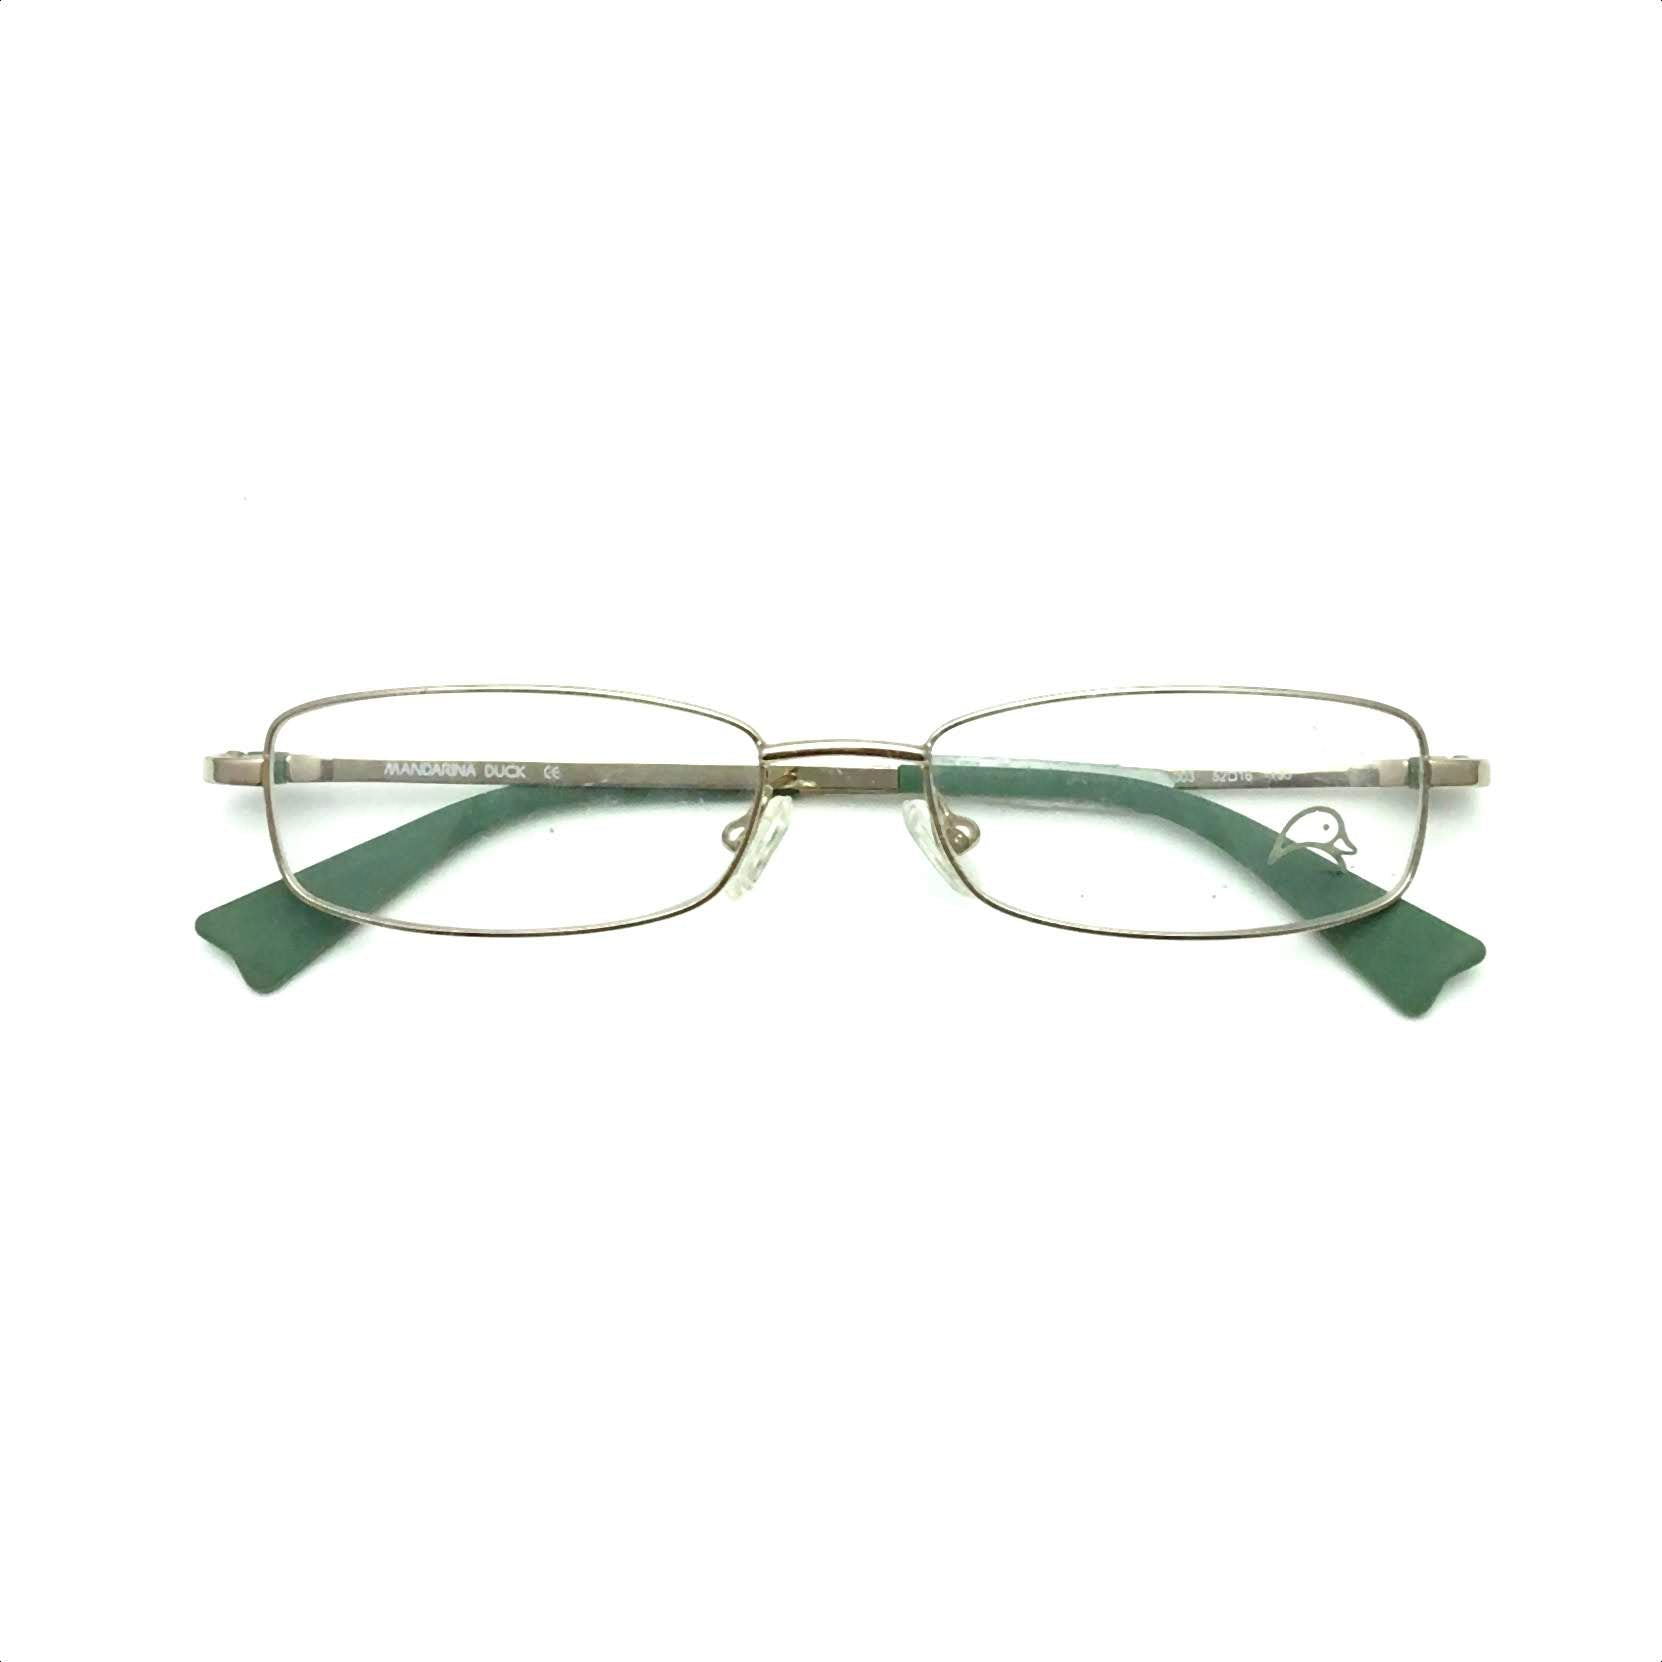 M. Duck Glasses $19 Readers A7